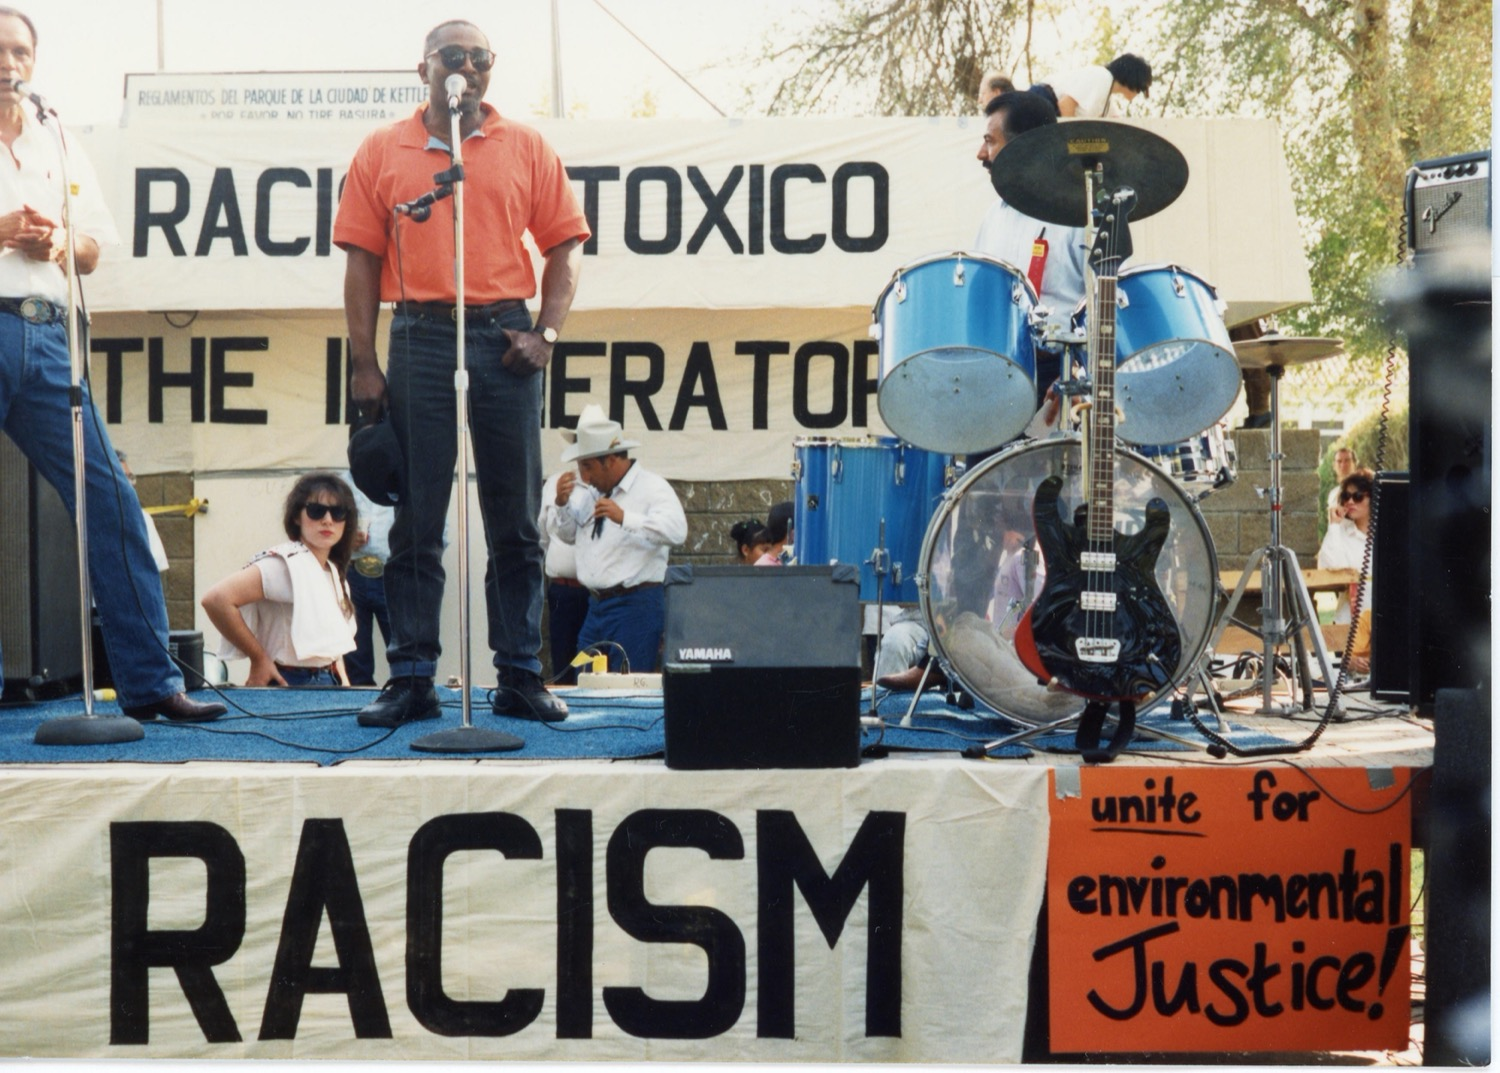 """a black man in a red polo stands up on a stage and speaks in a mic at a protest rally. next to him are a band's instruments. signs read """"toxico"""" and """"racism"""" and """"unite for environmental justice"""""""